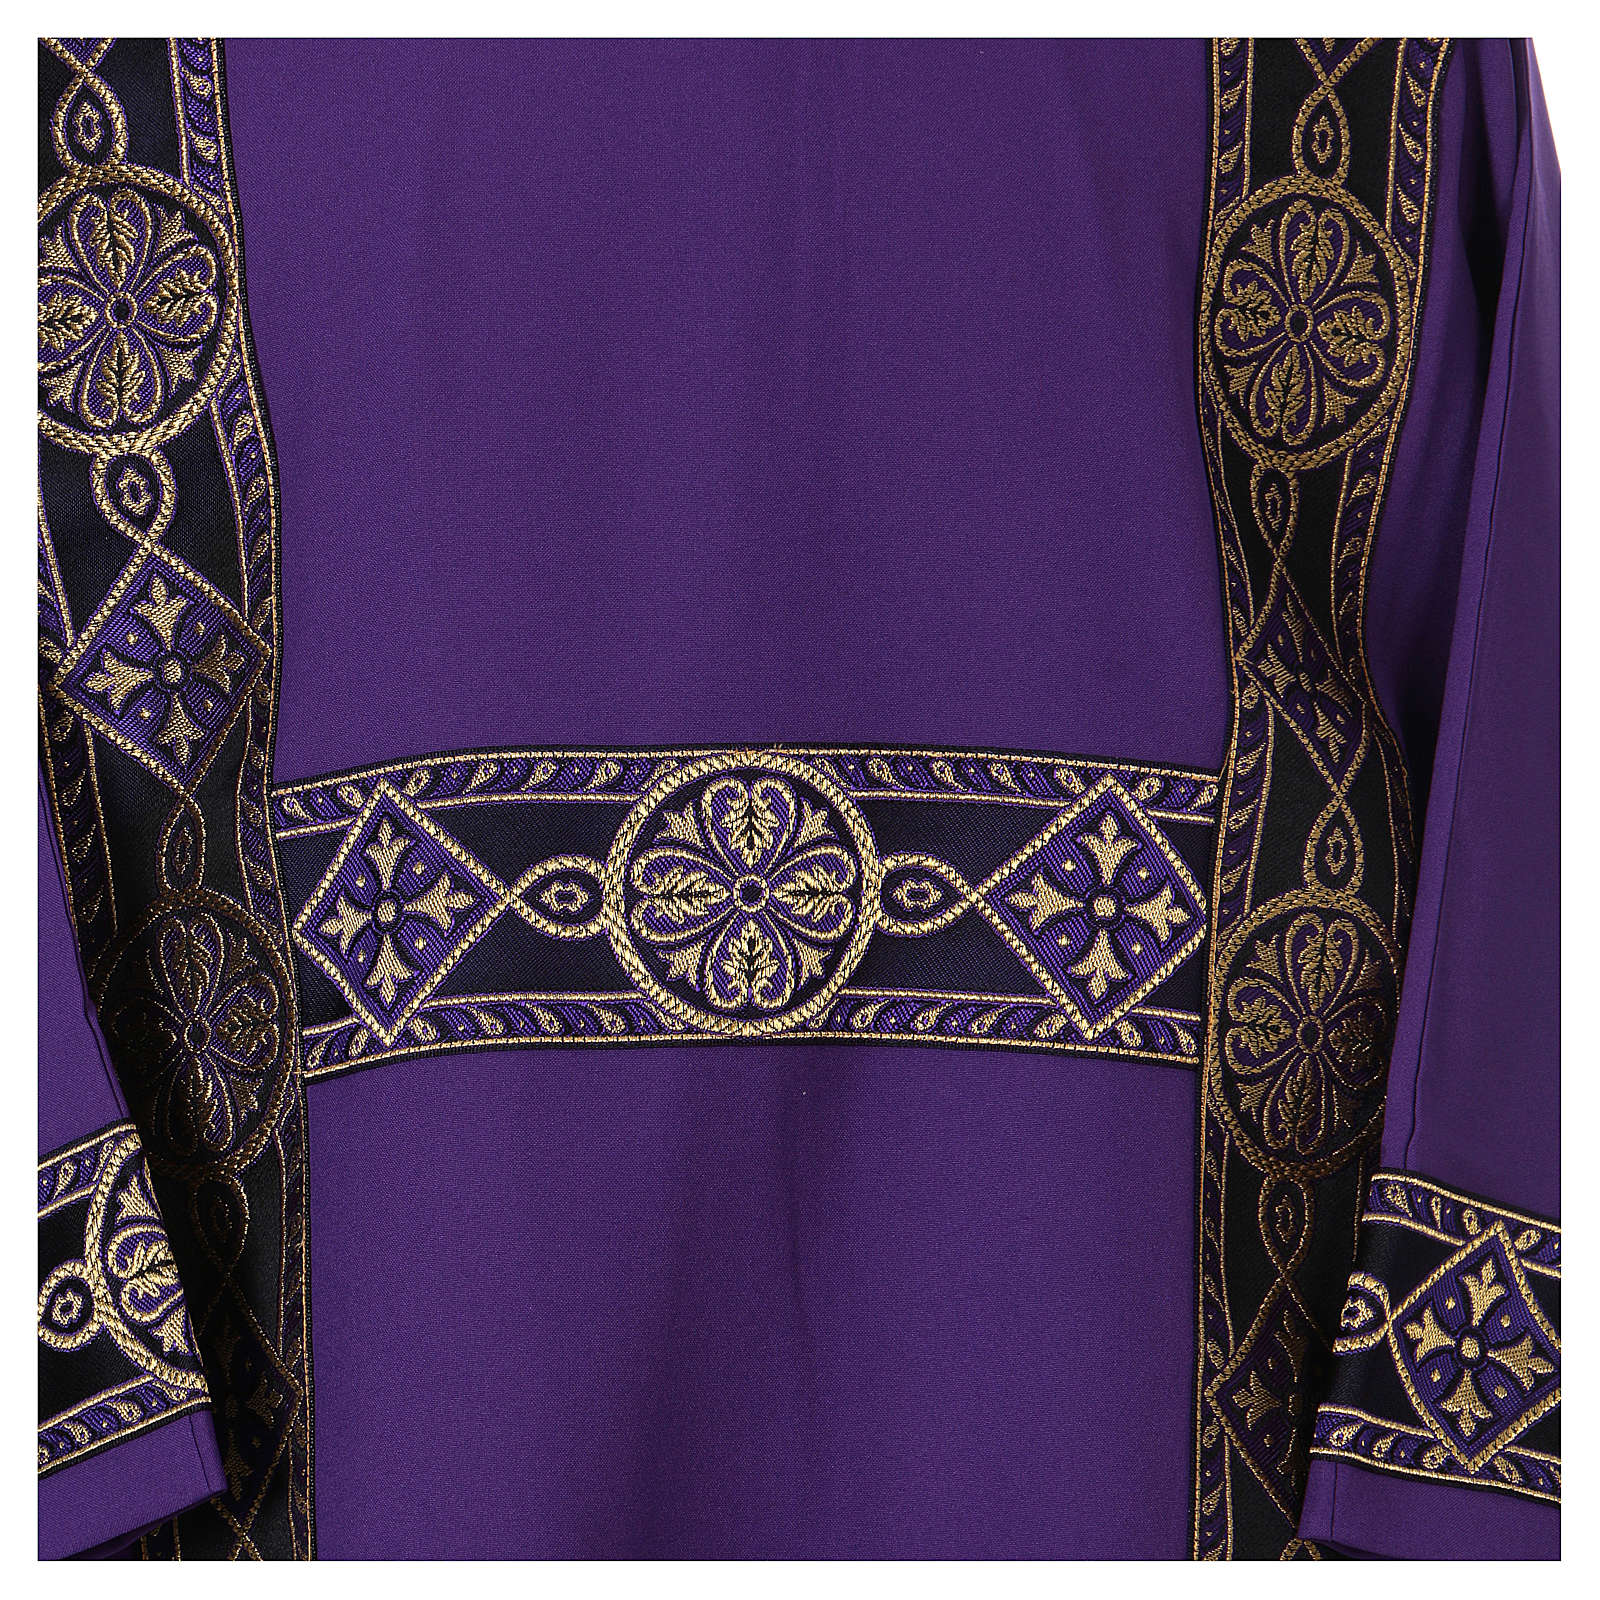 Deacon Dalmatic with decoration trim on front, Vatican fabric 100% polyester 4